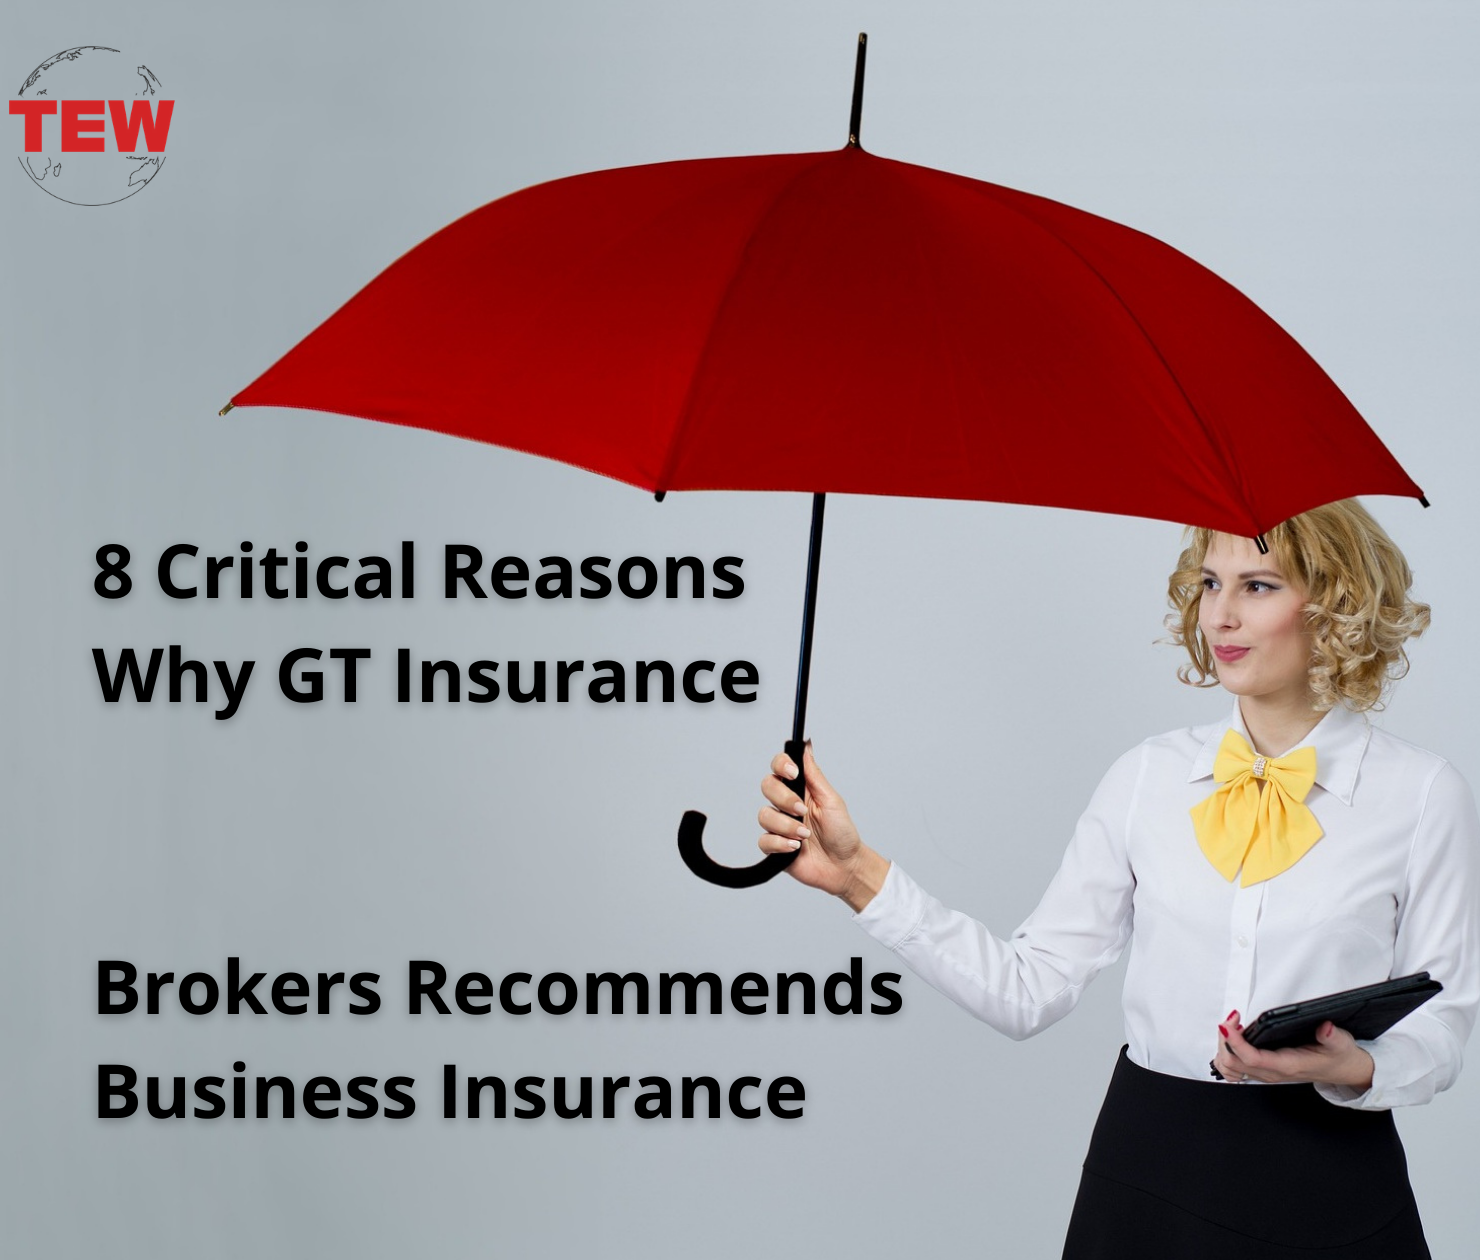 8 Critical Reasons Why GT Insurance Brokers Recommends Business Insurance